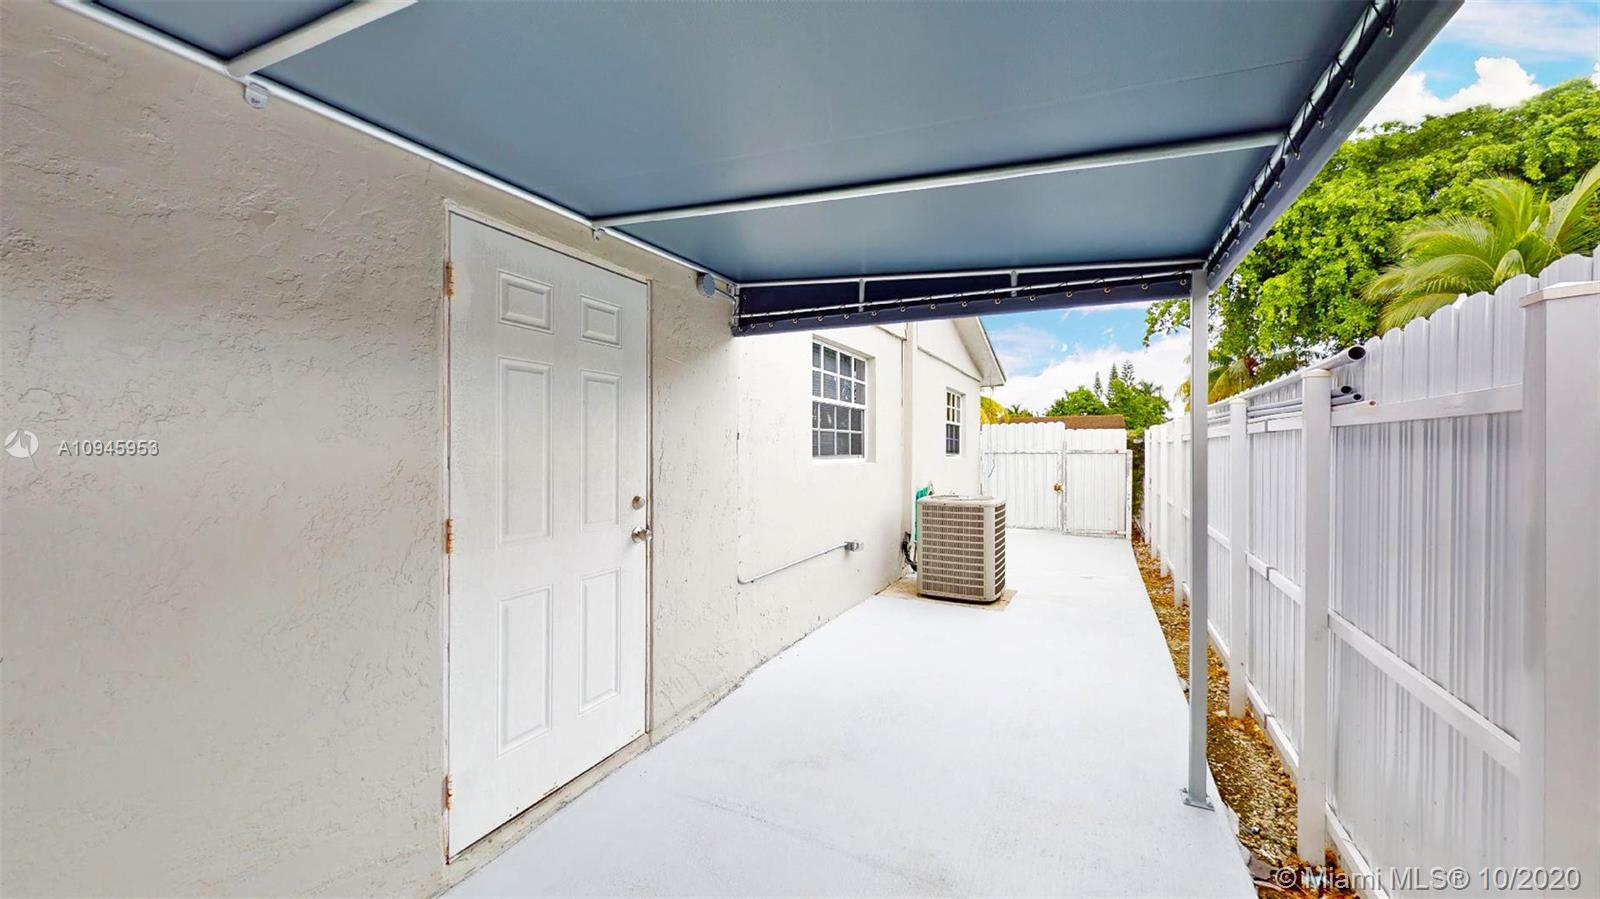 Cozy 1 Bedroom 1 Bathroom  in great location near shopping centers, restaurants, and major highways. The interior offers ceramic tile floors throughout, new kitchen with new appliances, updated bathroom, washer & dryer, updated bathroom, large bedroom, custom closet, and new AC unit. The exterior offers a private & covered entrance with personal driveway. MOVE IN READY! WILL NOT LAST!  $1,500 (Power & Water included)